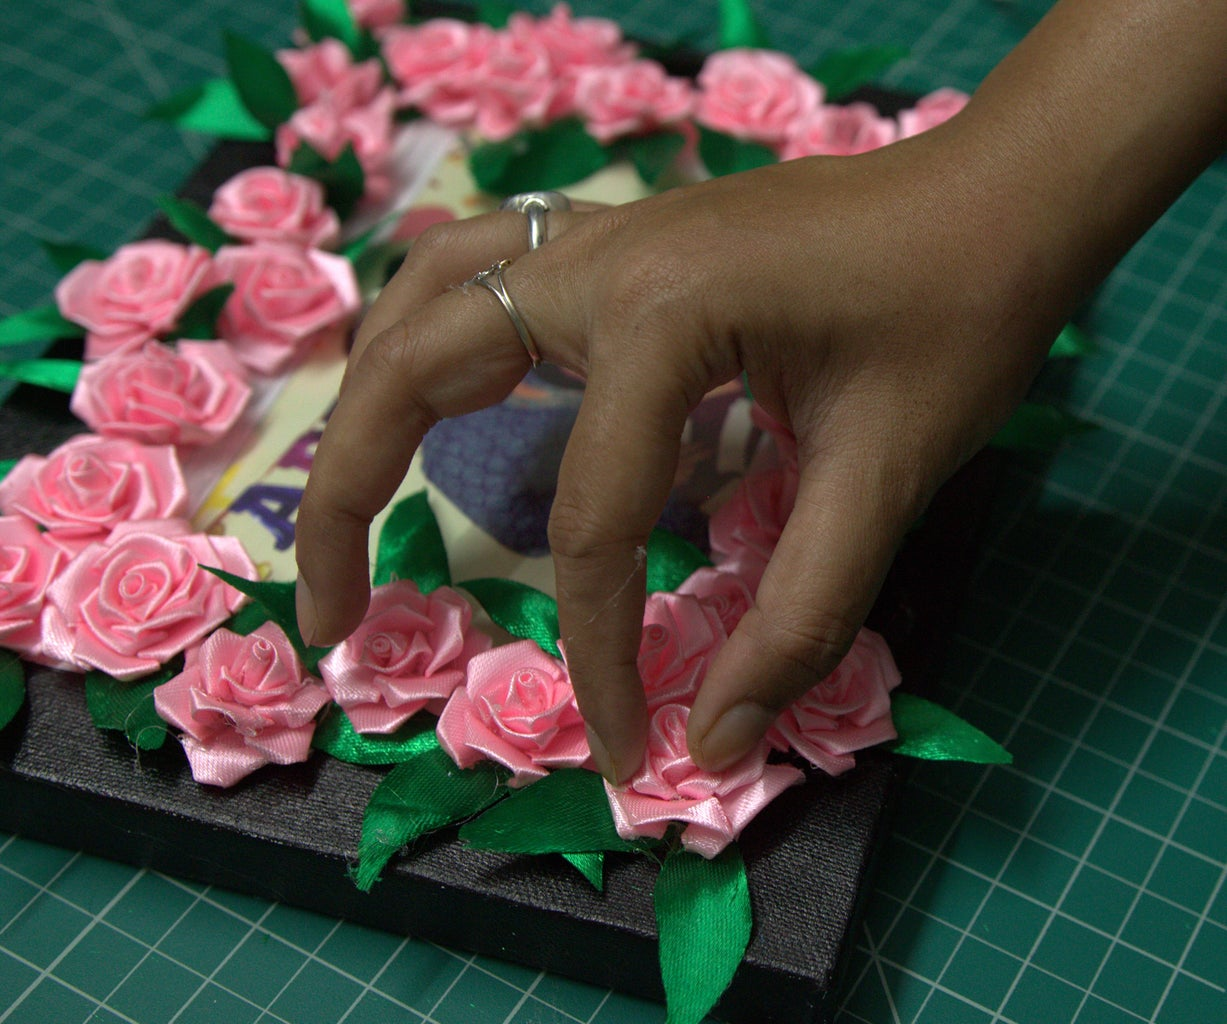 Gluing the Roses on the Frame